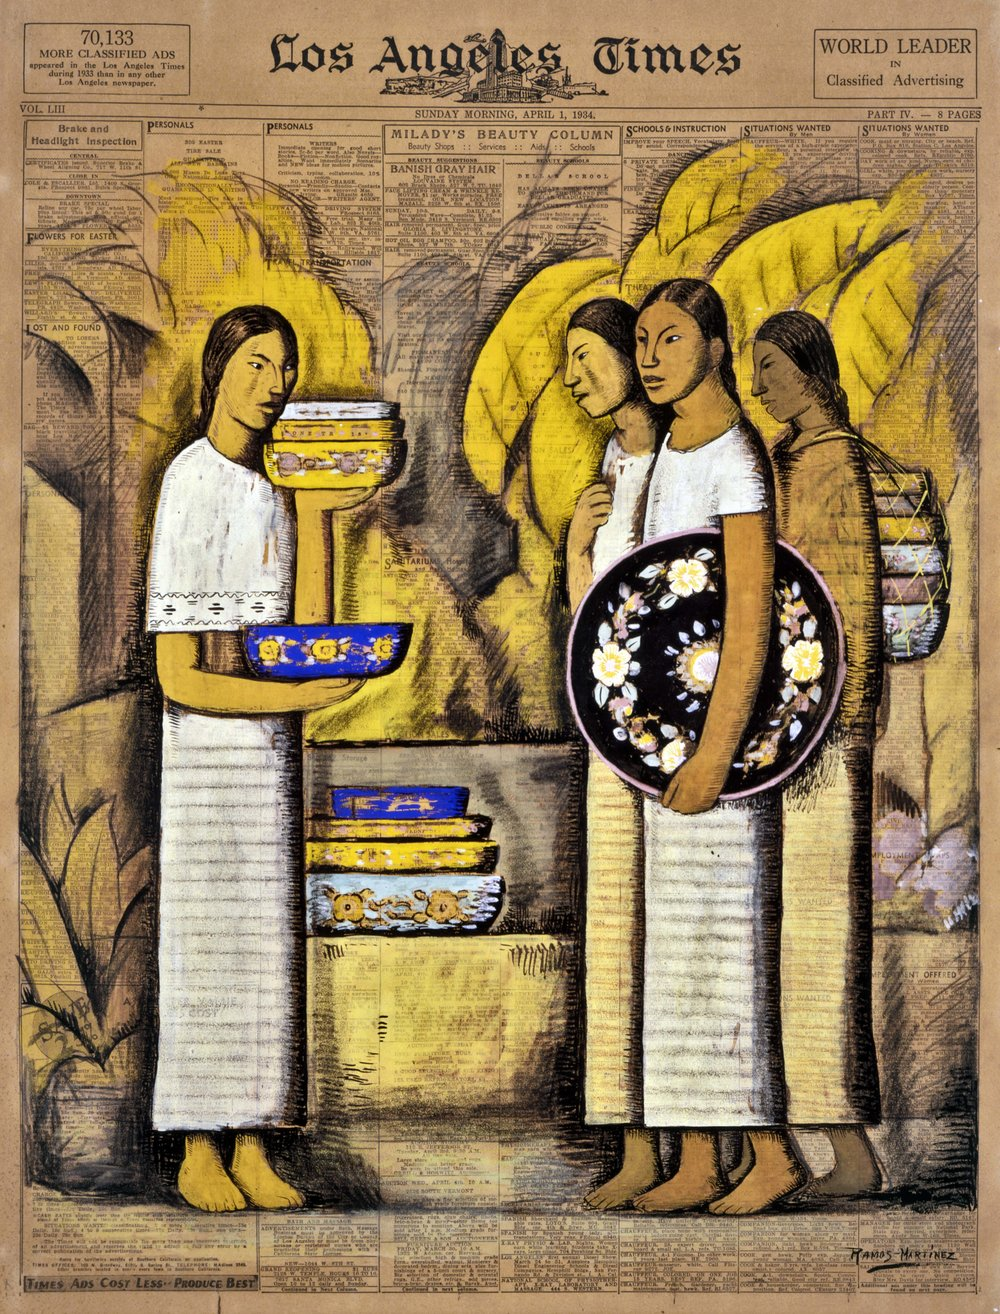 Vendedoras de Cerámica / Pottery Vendors  1934 tempera and charcoal on newsprint / temple y carbón sobre papel periódico ( Los Angeles Times , Sunday, April 1, 1934) 22.6 x 16.6 inches / 57.5 x 42.2 centímetros Private collection